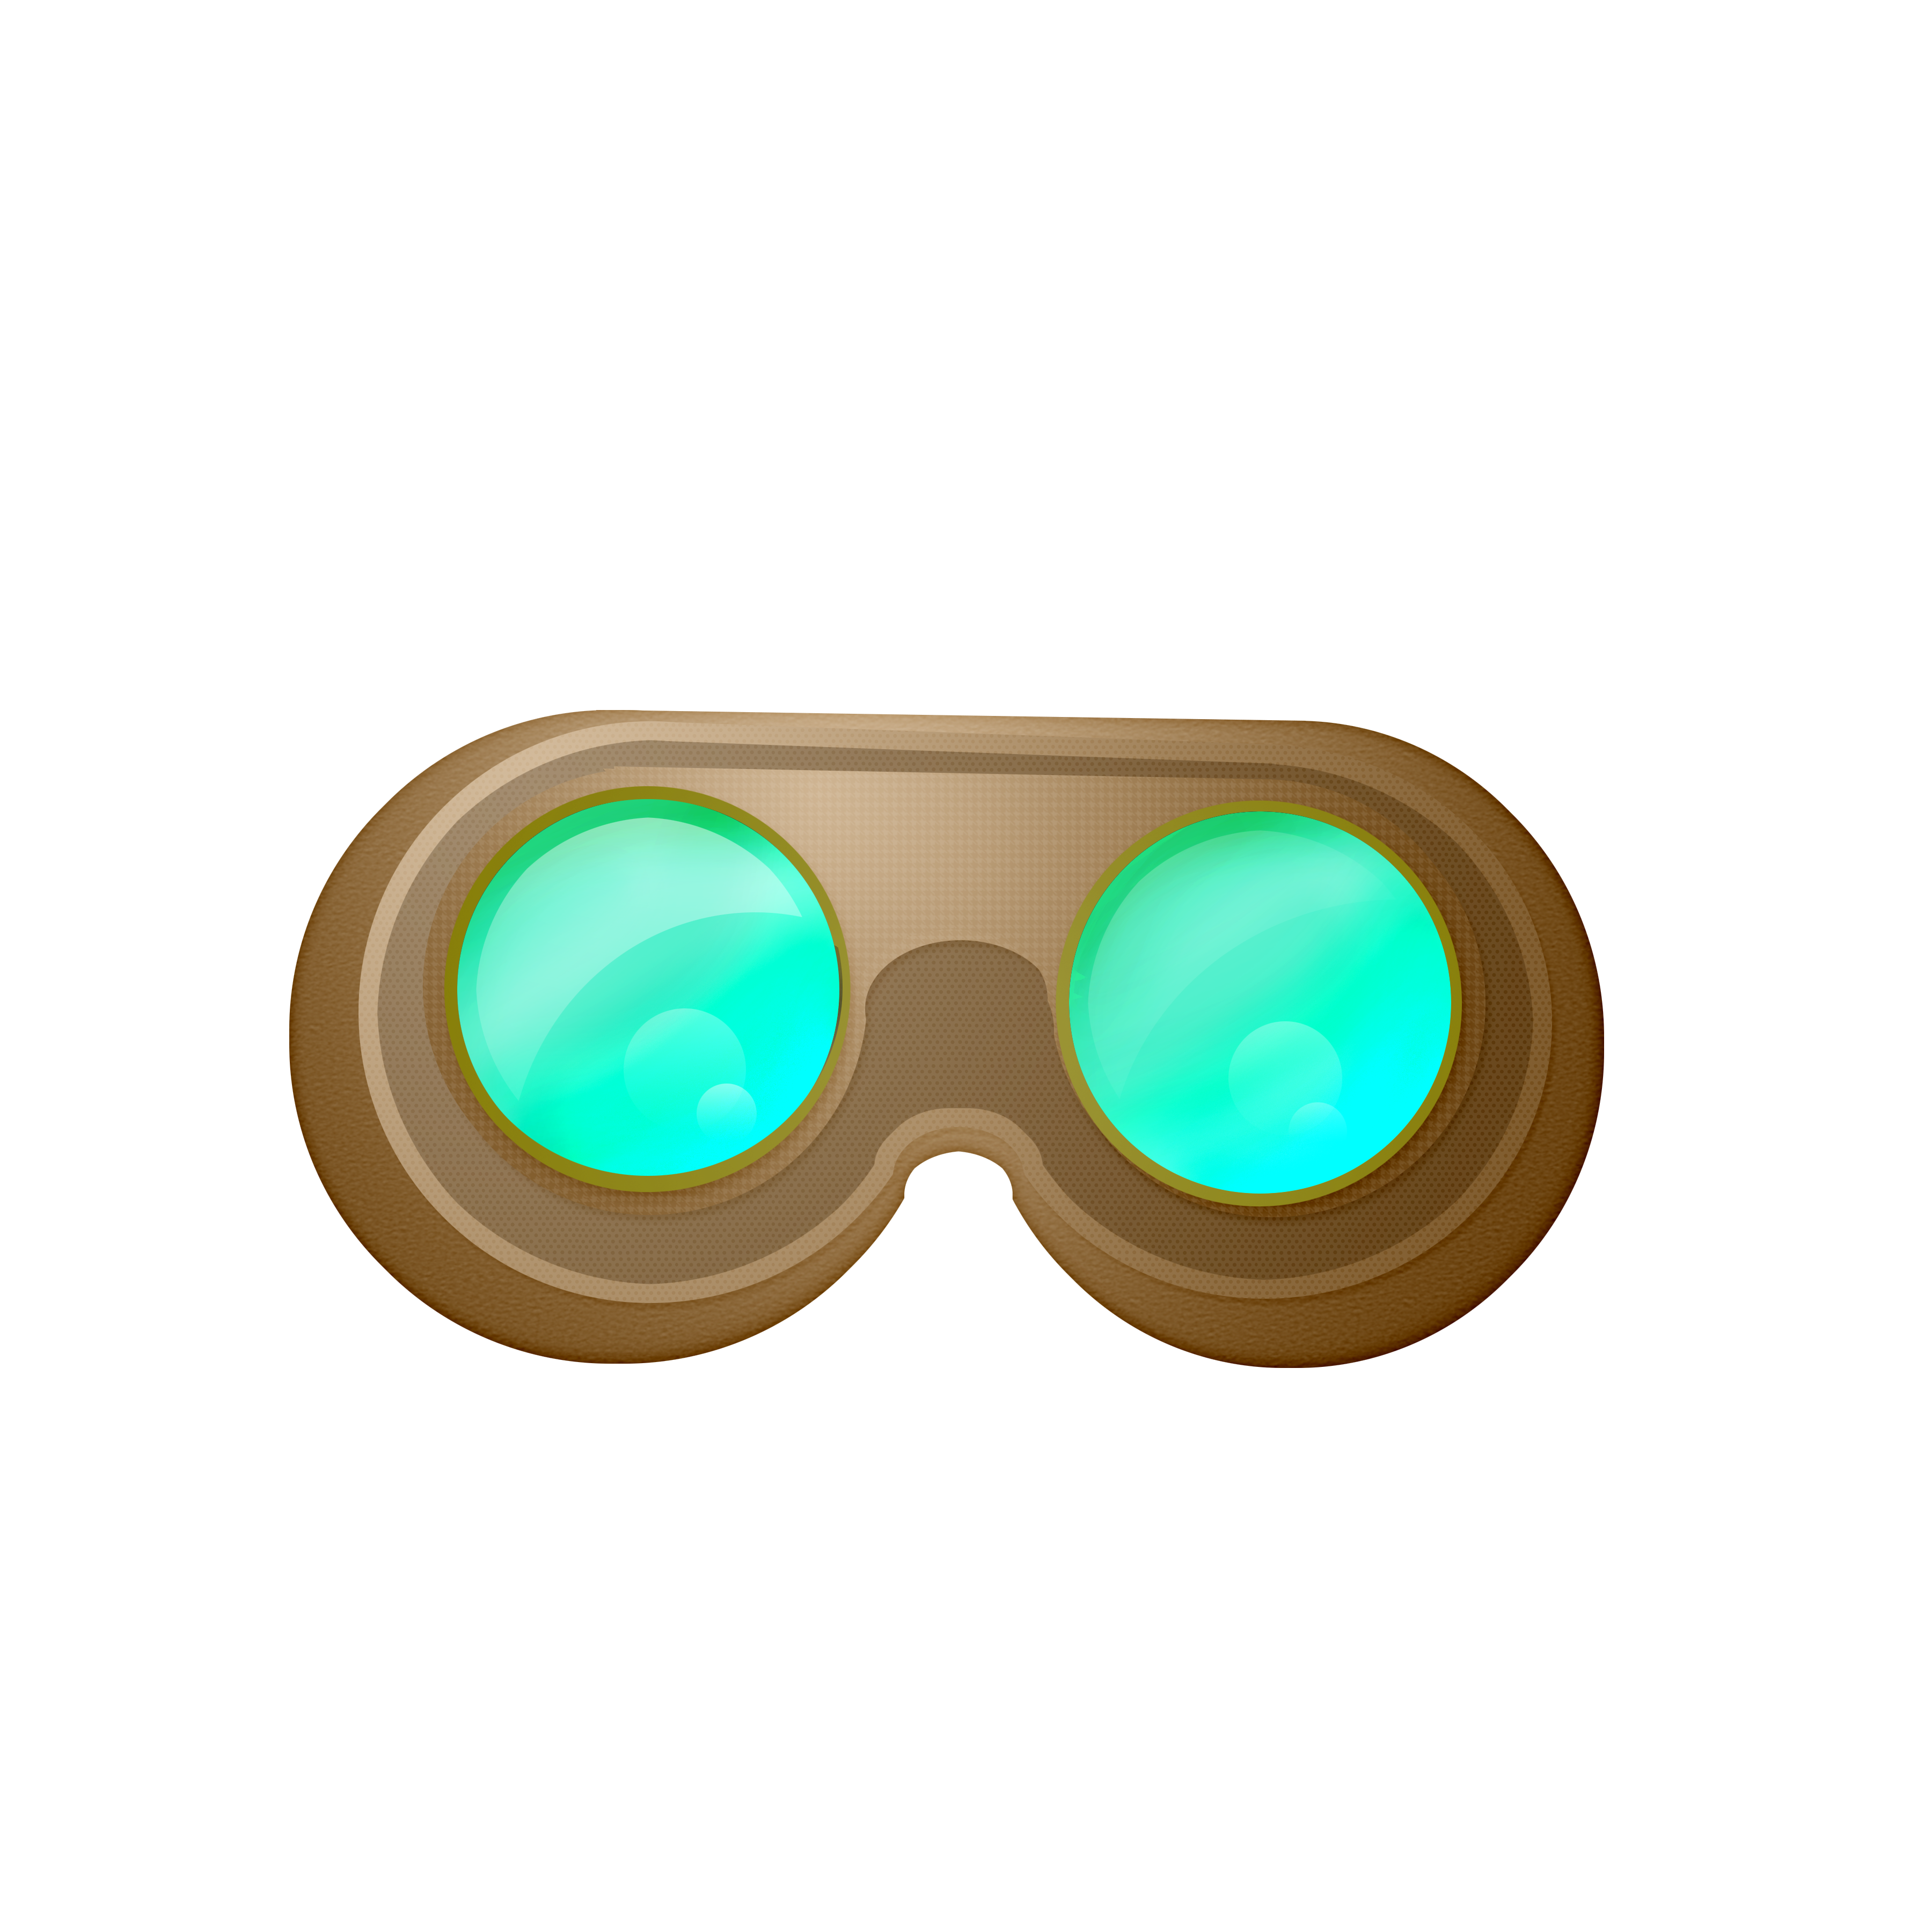 vector free download  collection of goggles. Steampunk key clipart